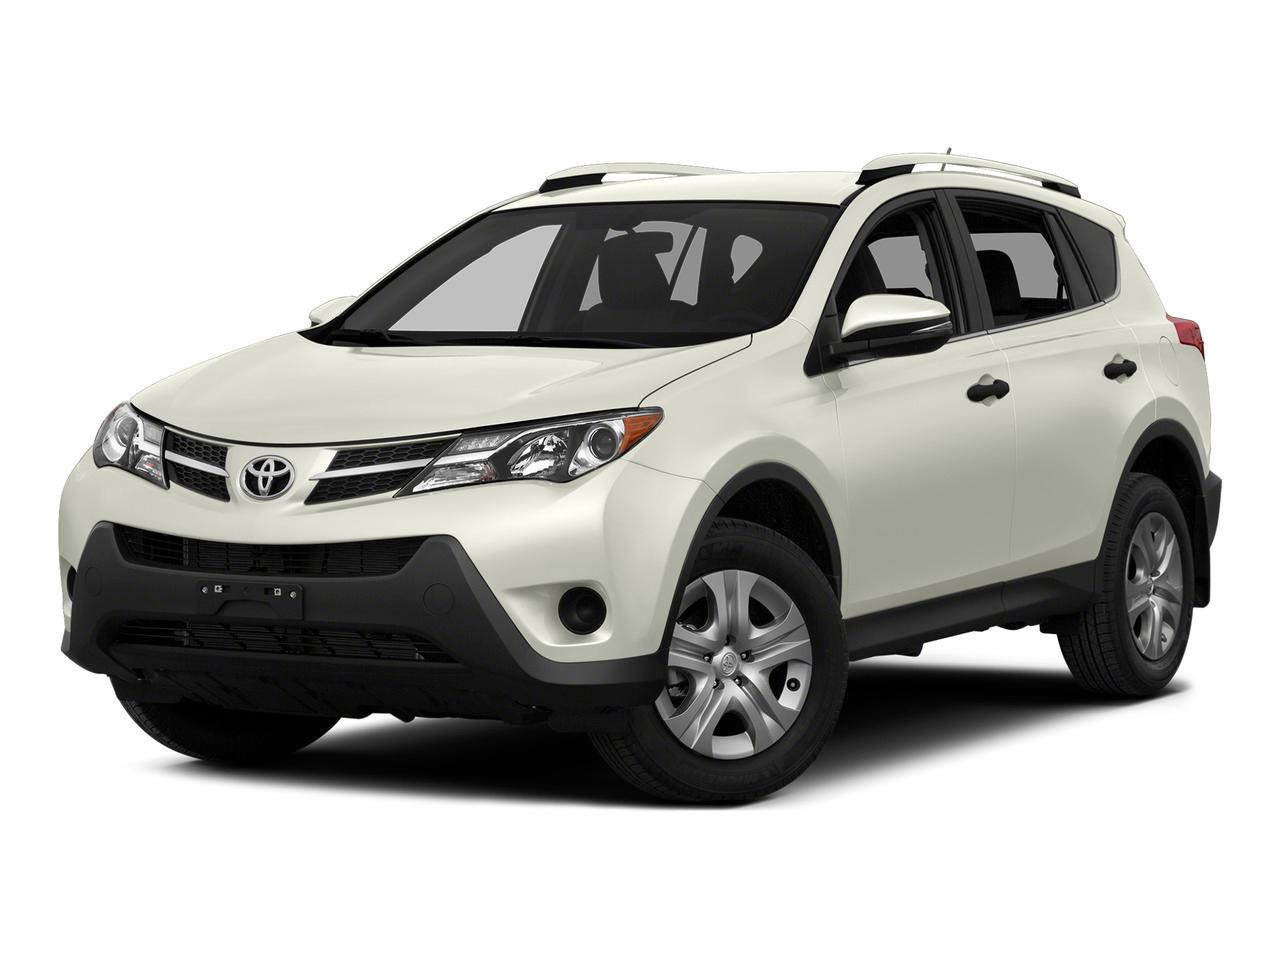 2015 Toyota RAV4 Vehicle Photo in San Antonio, TX 78257